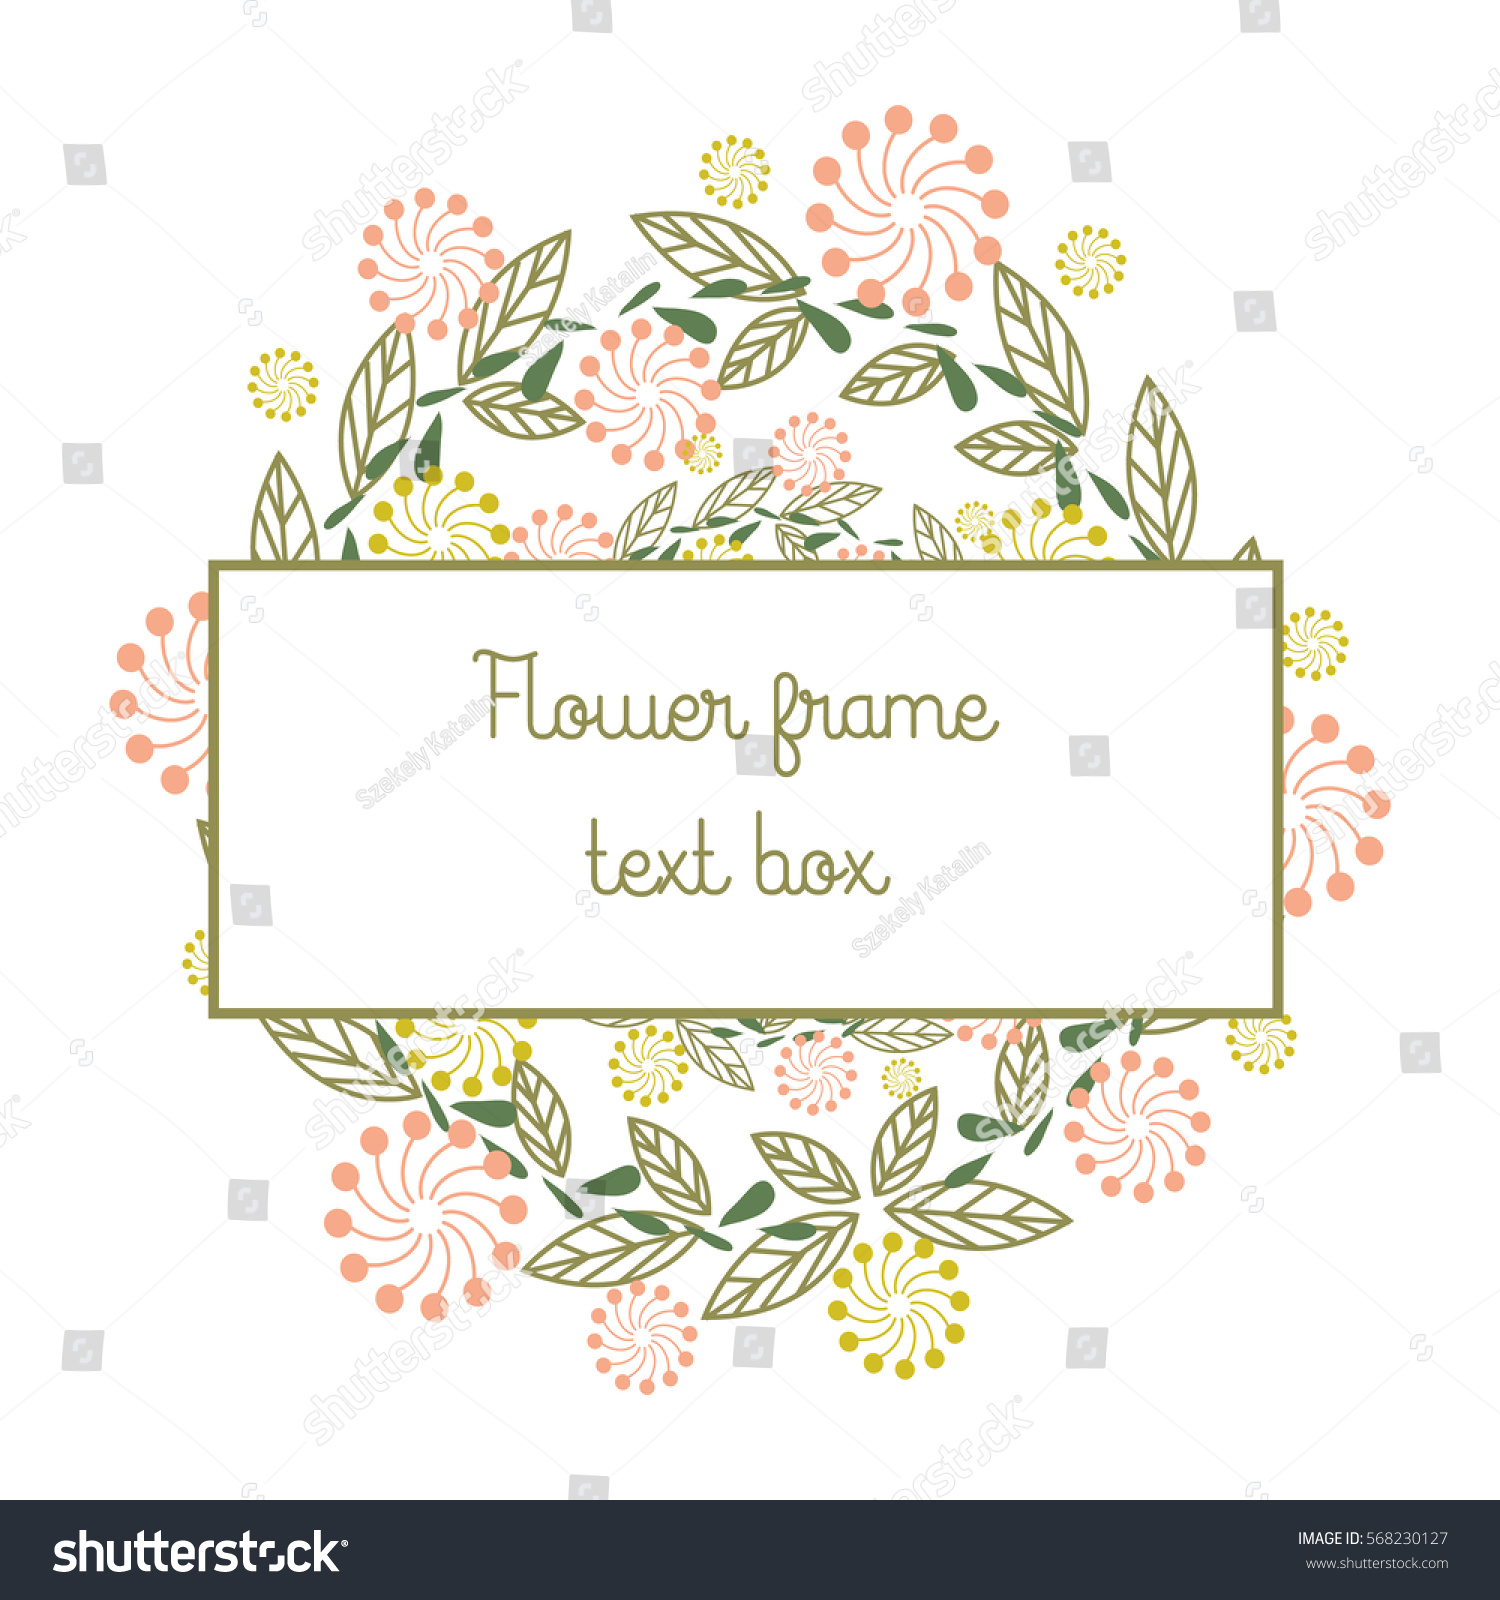 Vector Flower Frame Template Invitation Greeting Stock Vector ...